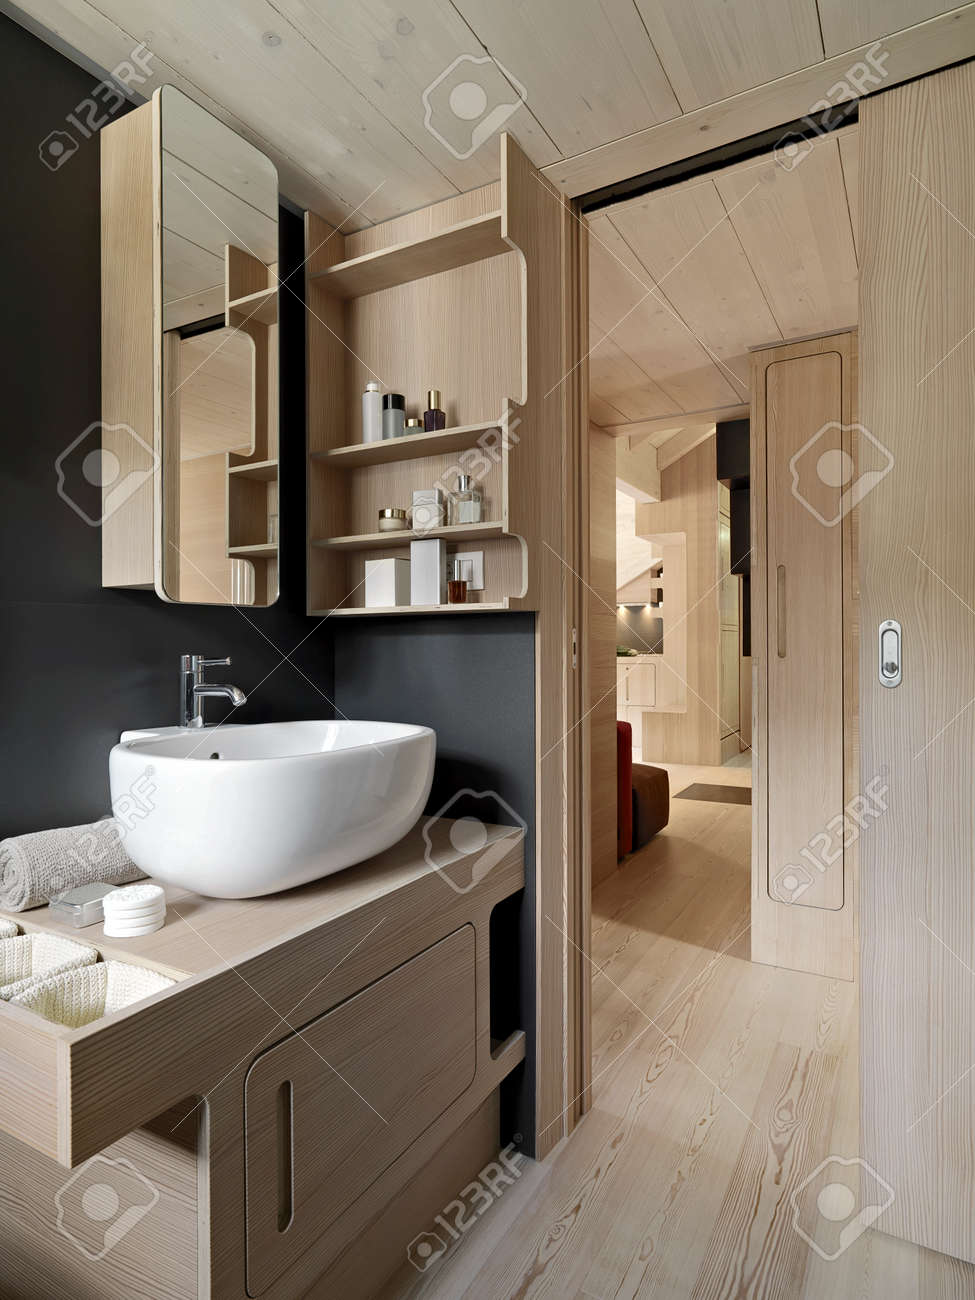 Paneling For Bathroom Interior View Of A Modern Bathroom With Wood Paneling